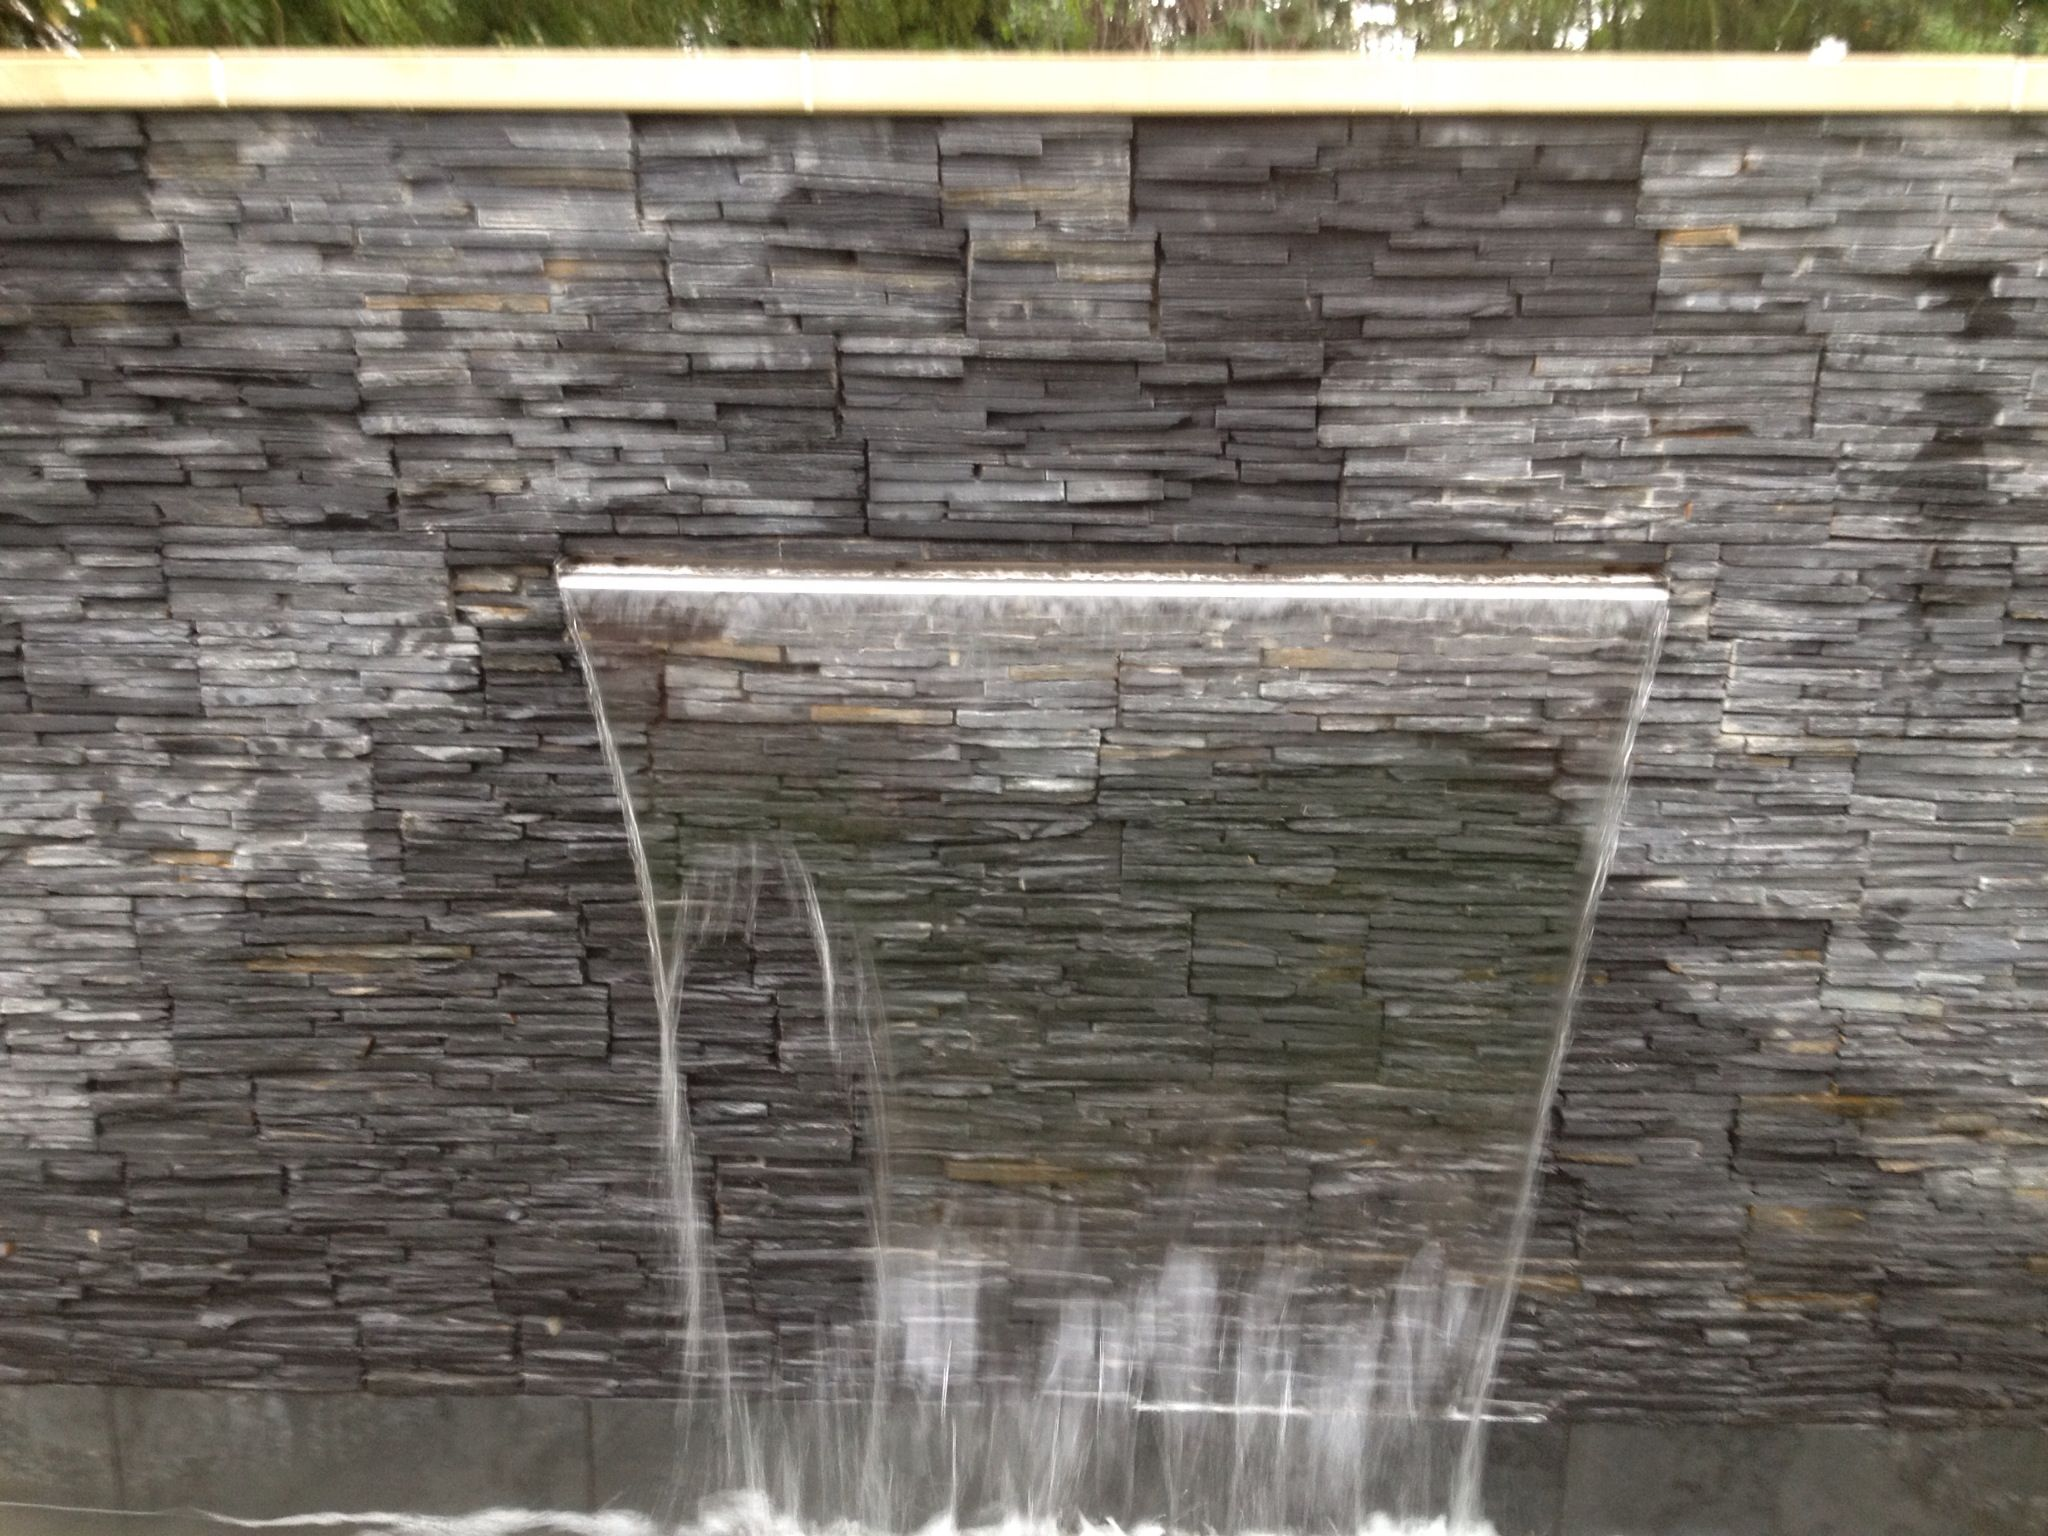 Sheer Descent, Water Feature Wall With Tier Stone Cladding.